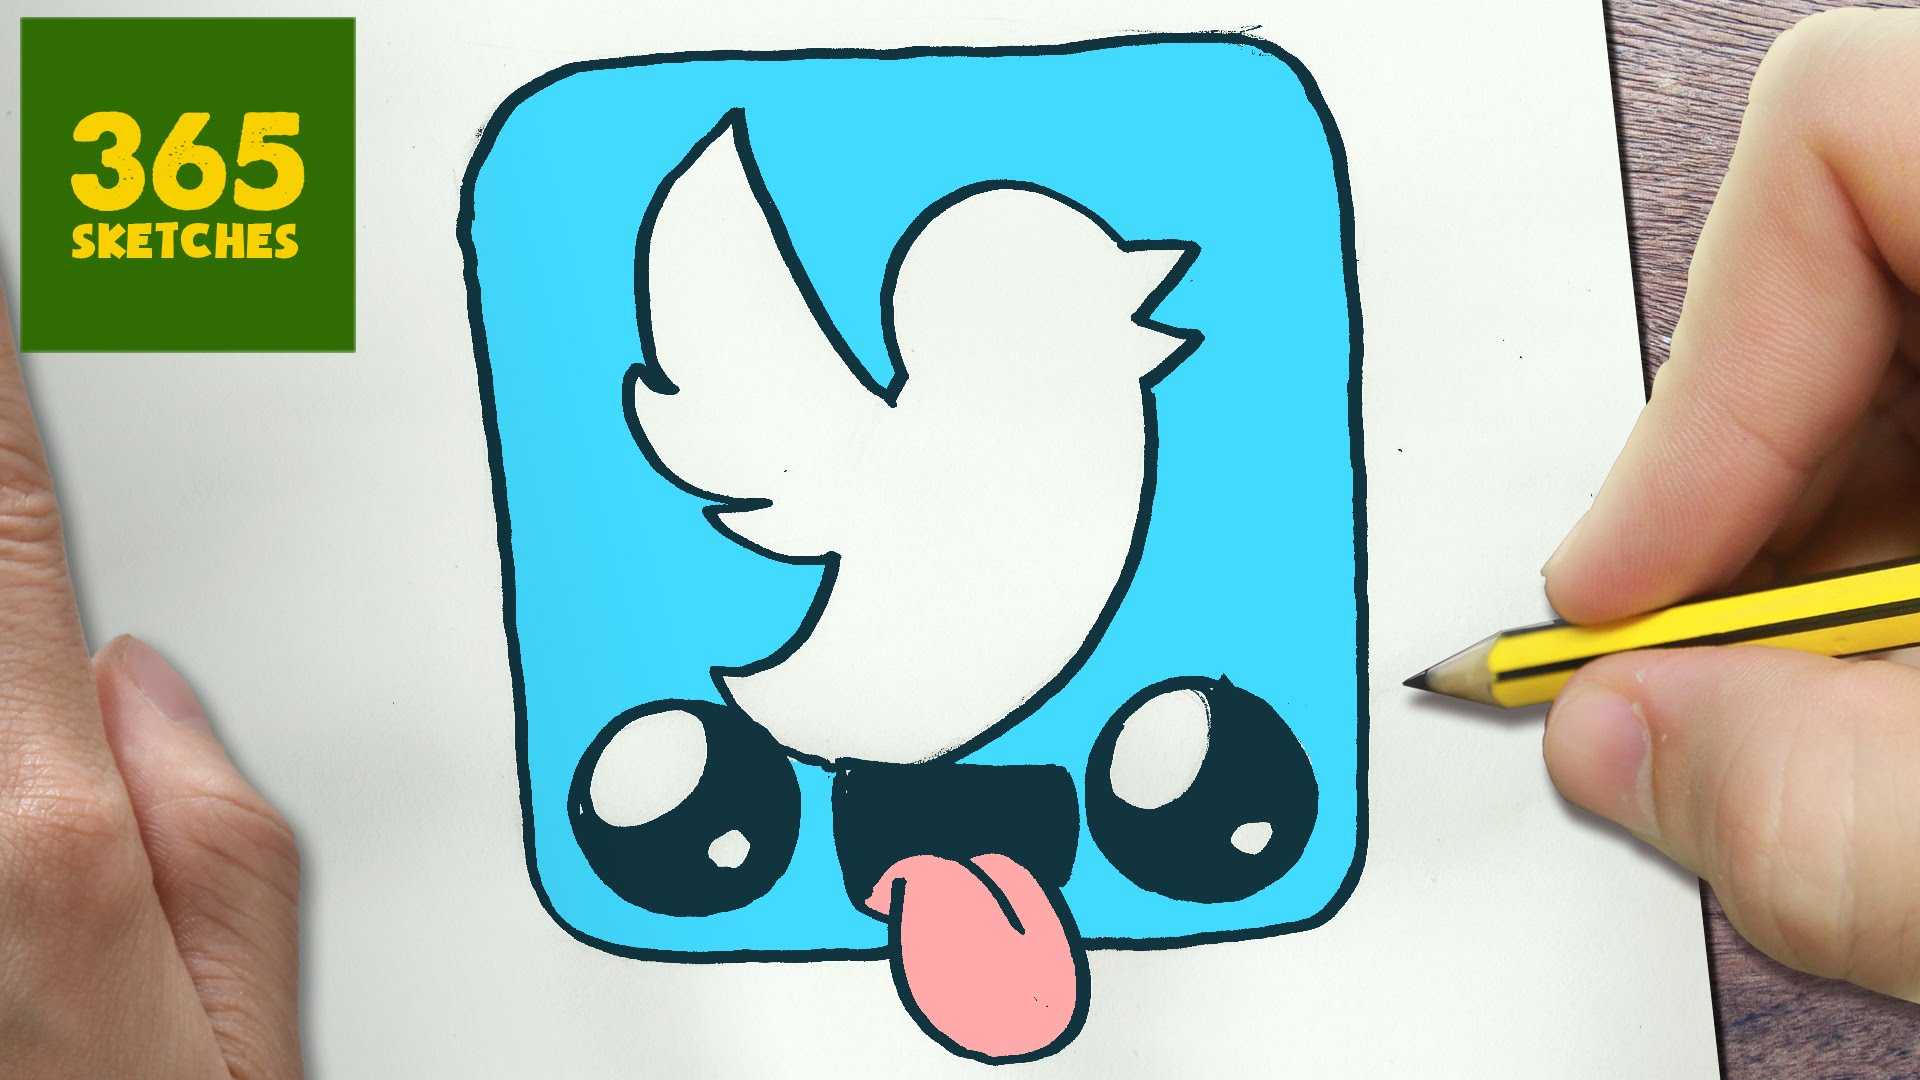 1920x1080 How To Draw A Twitter Logo Cute, Easy Step By Step Drawing Lessons